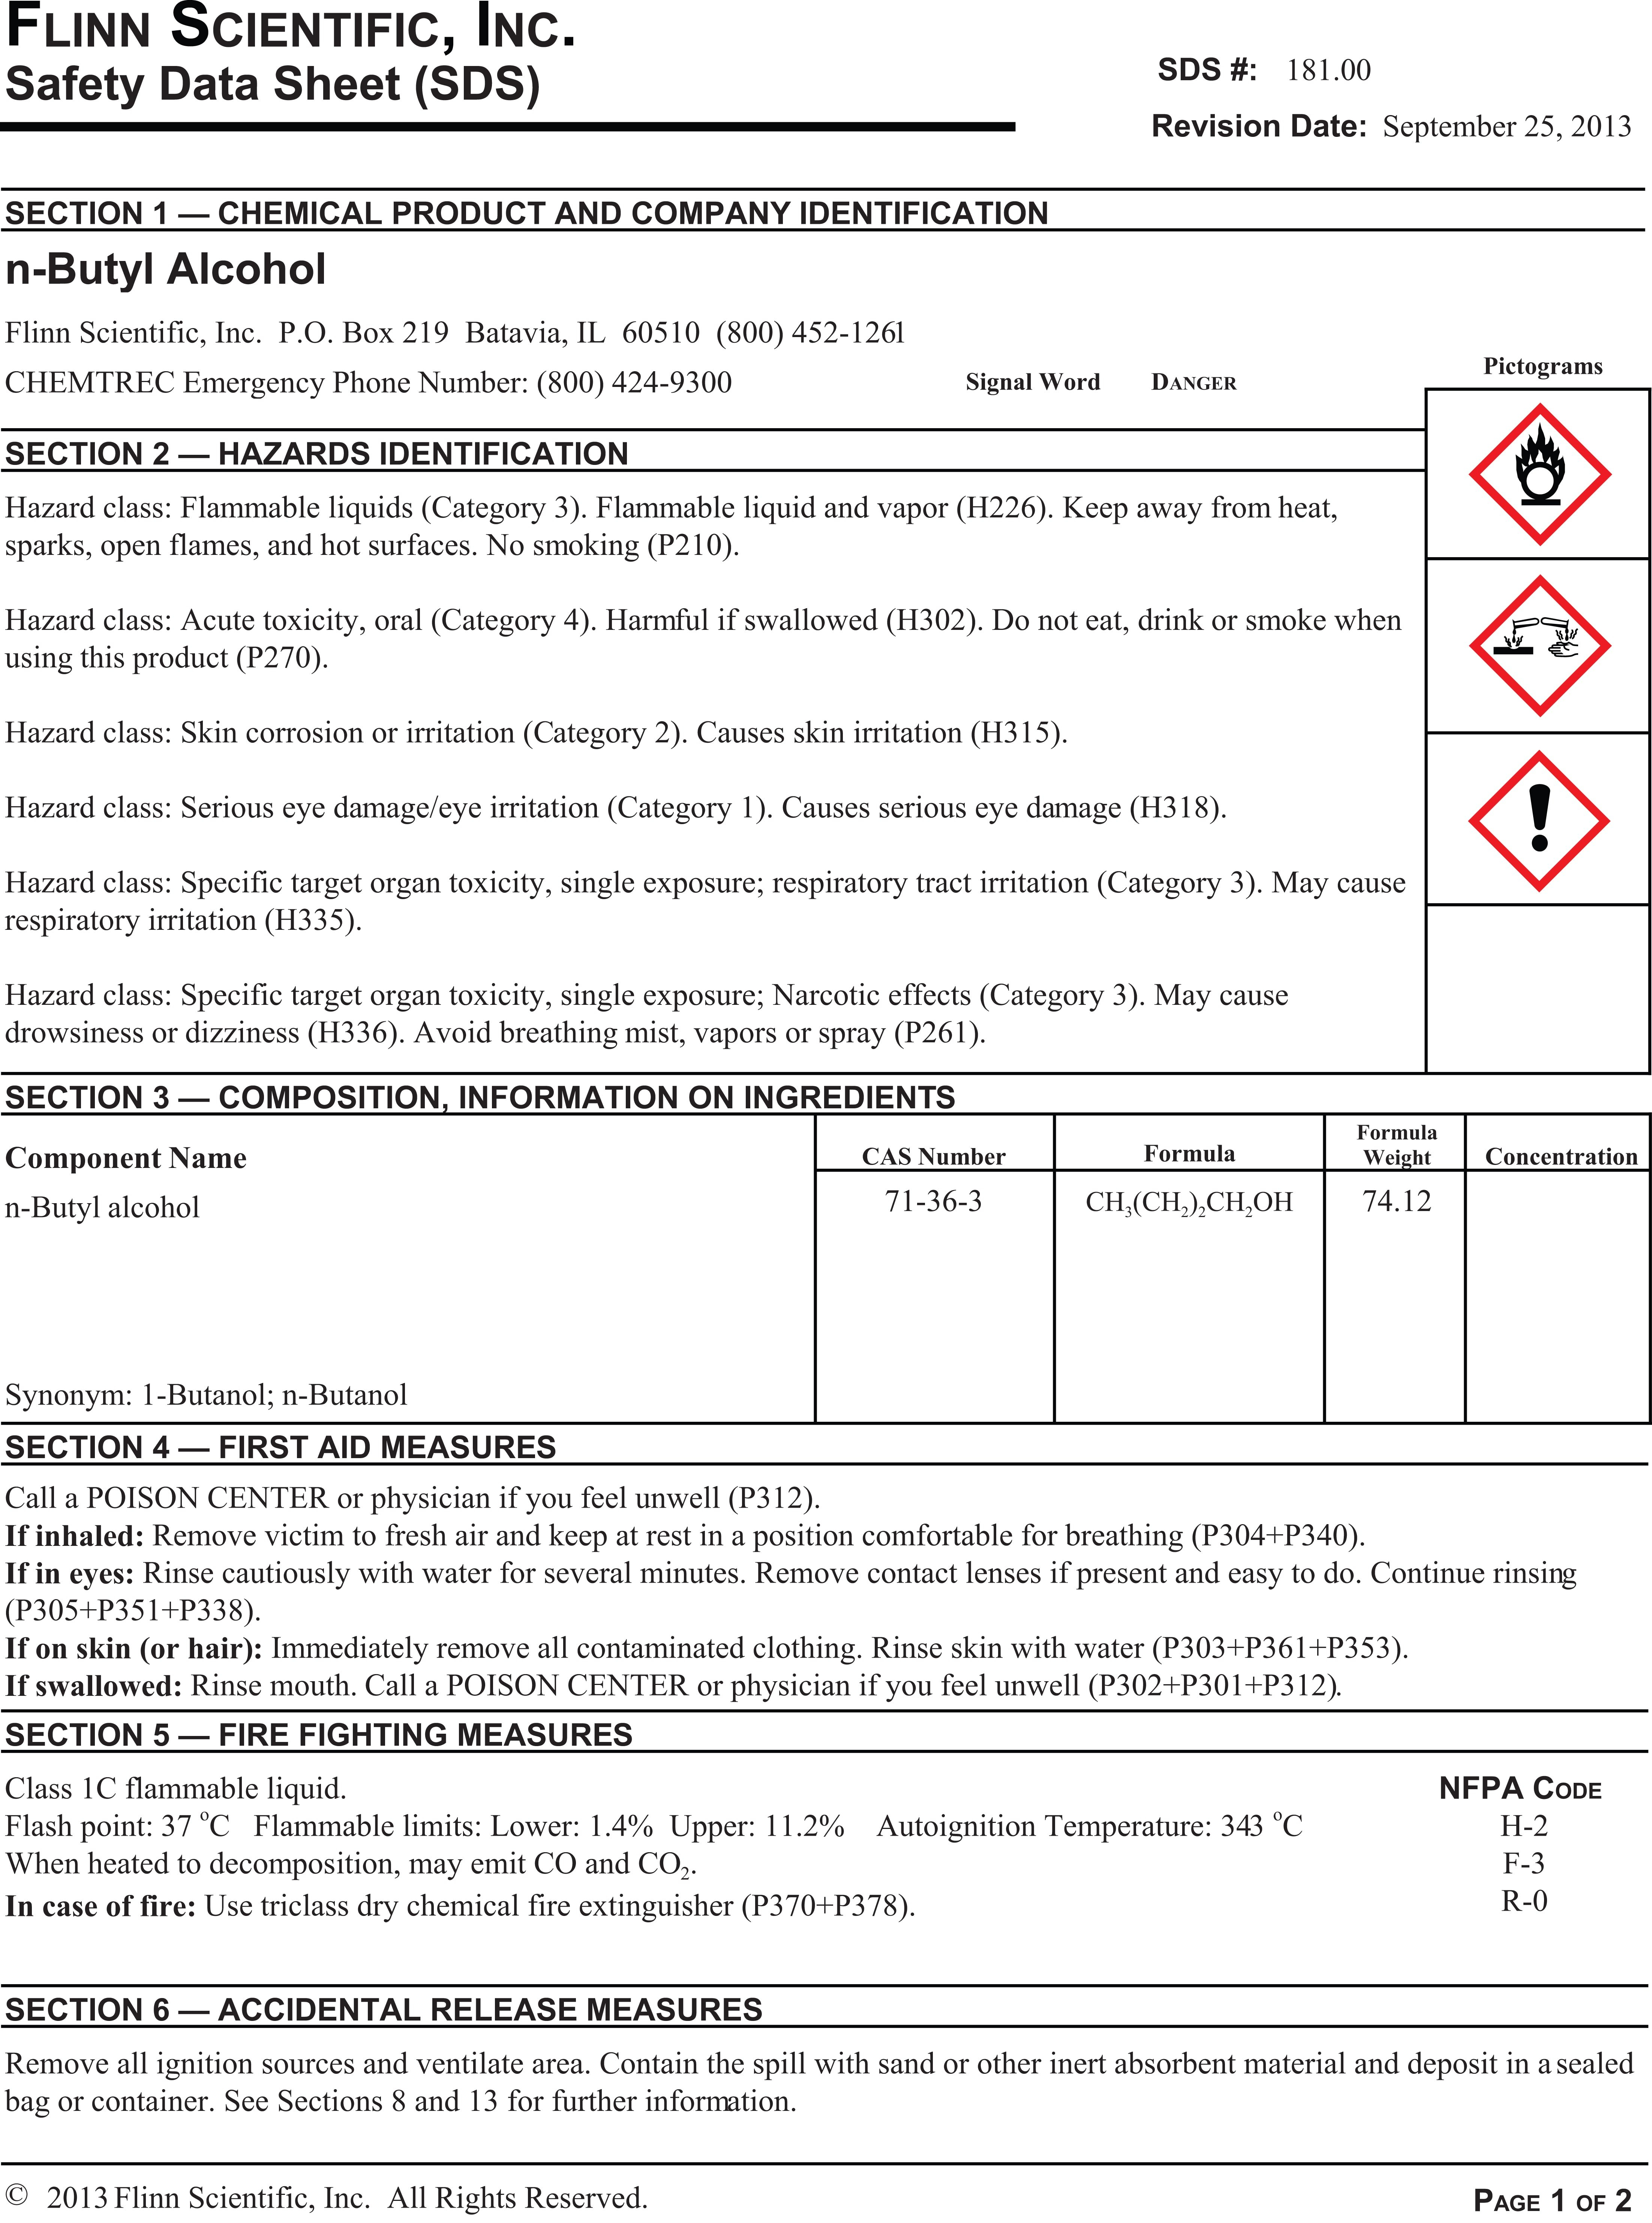 Msds Template Best Of Free Osha  Certification Basic Manage In Free Msds Label Template